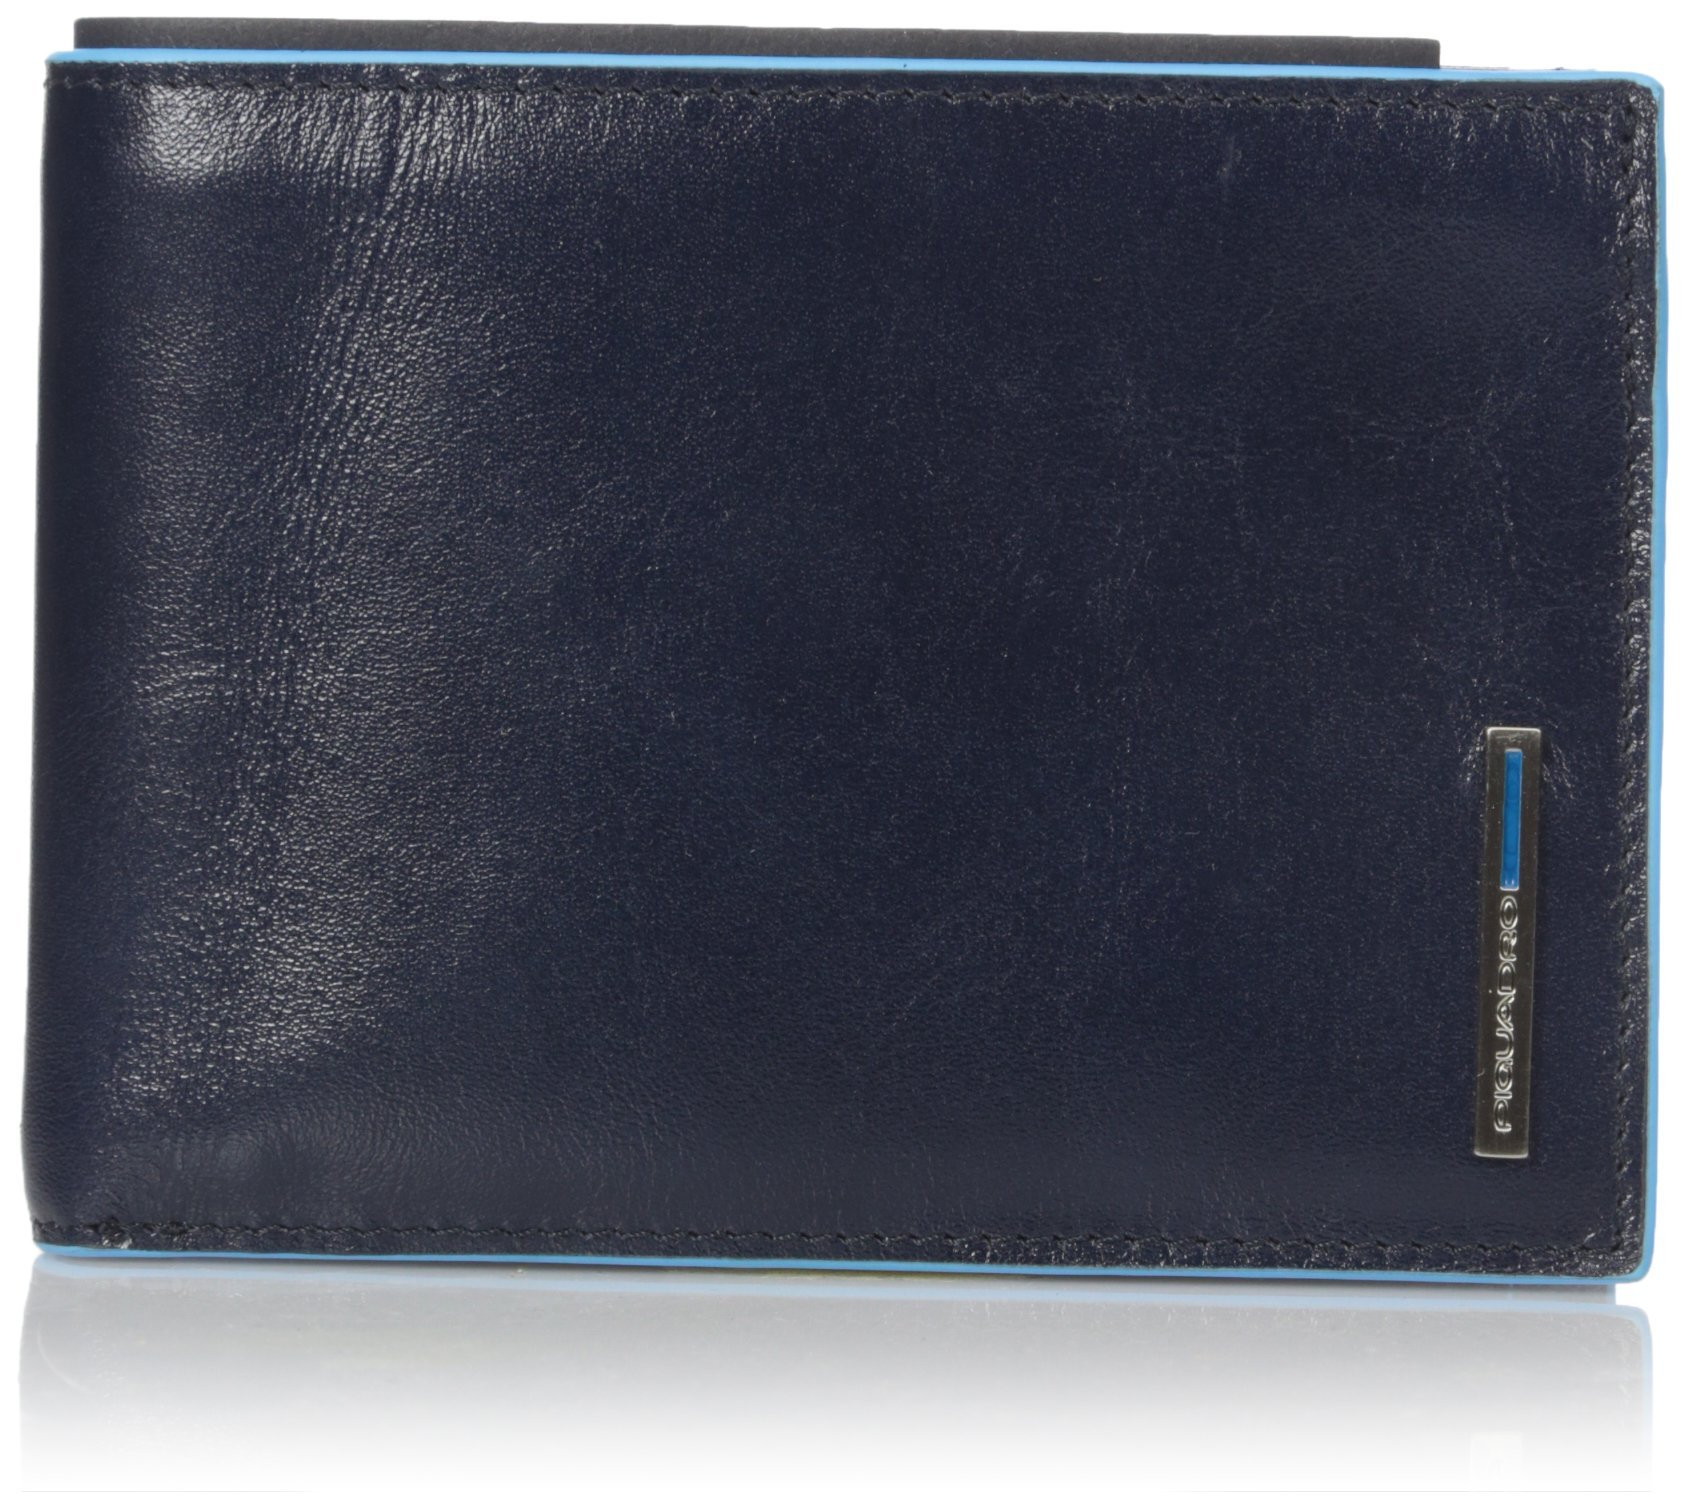 Piquadro Man's Wallet In Leather, Dark Blue, One Size